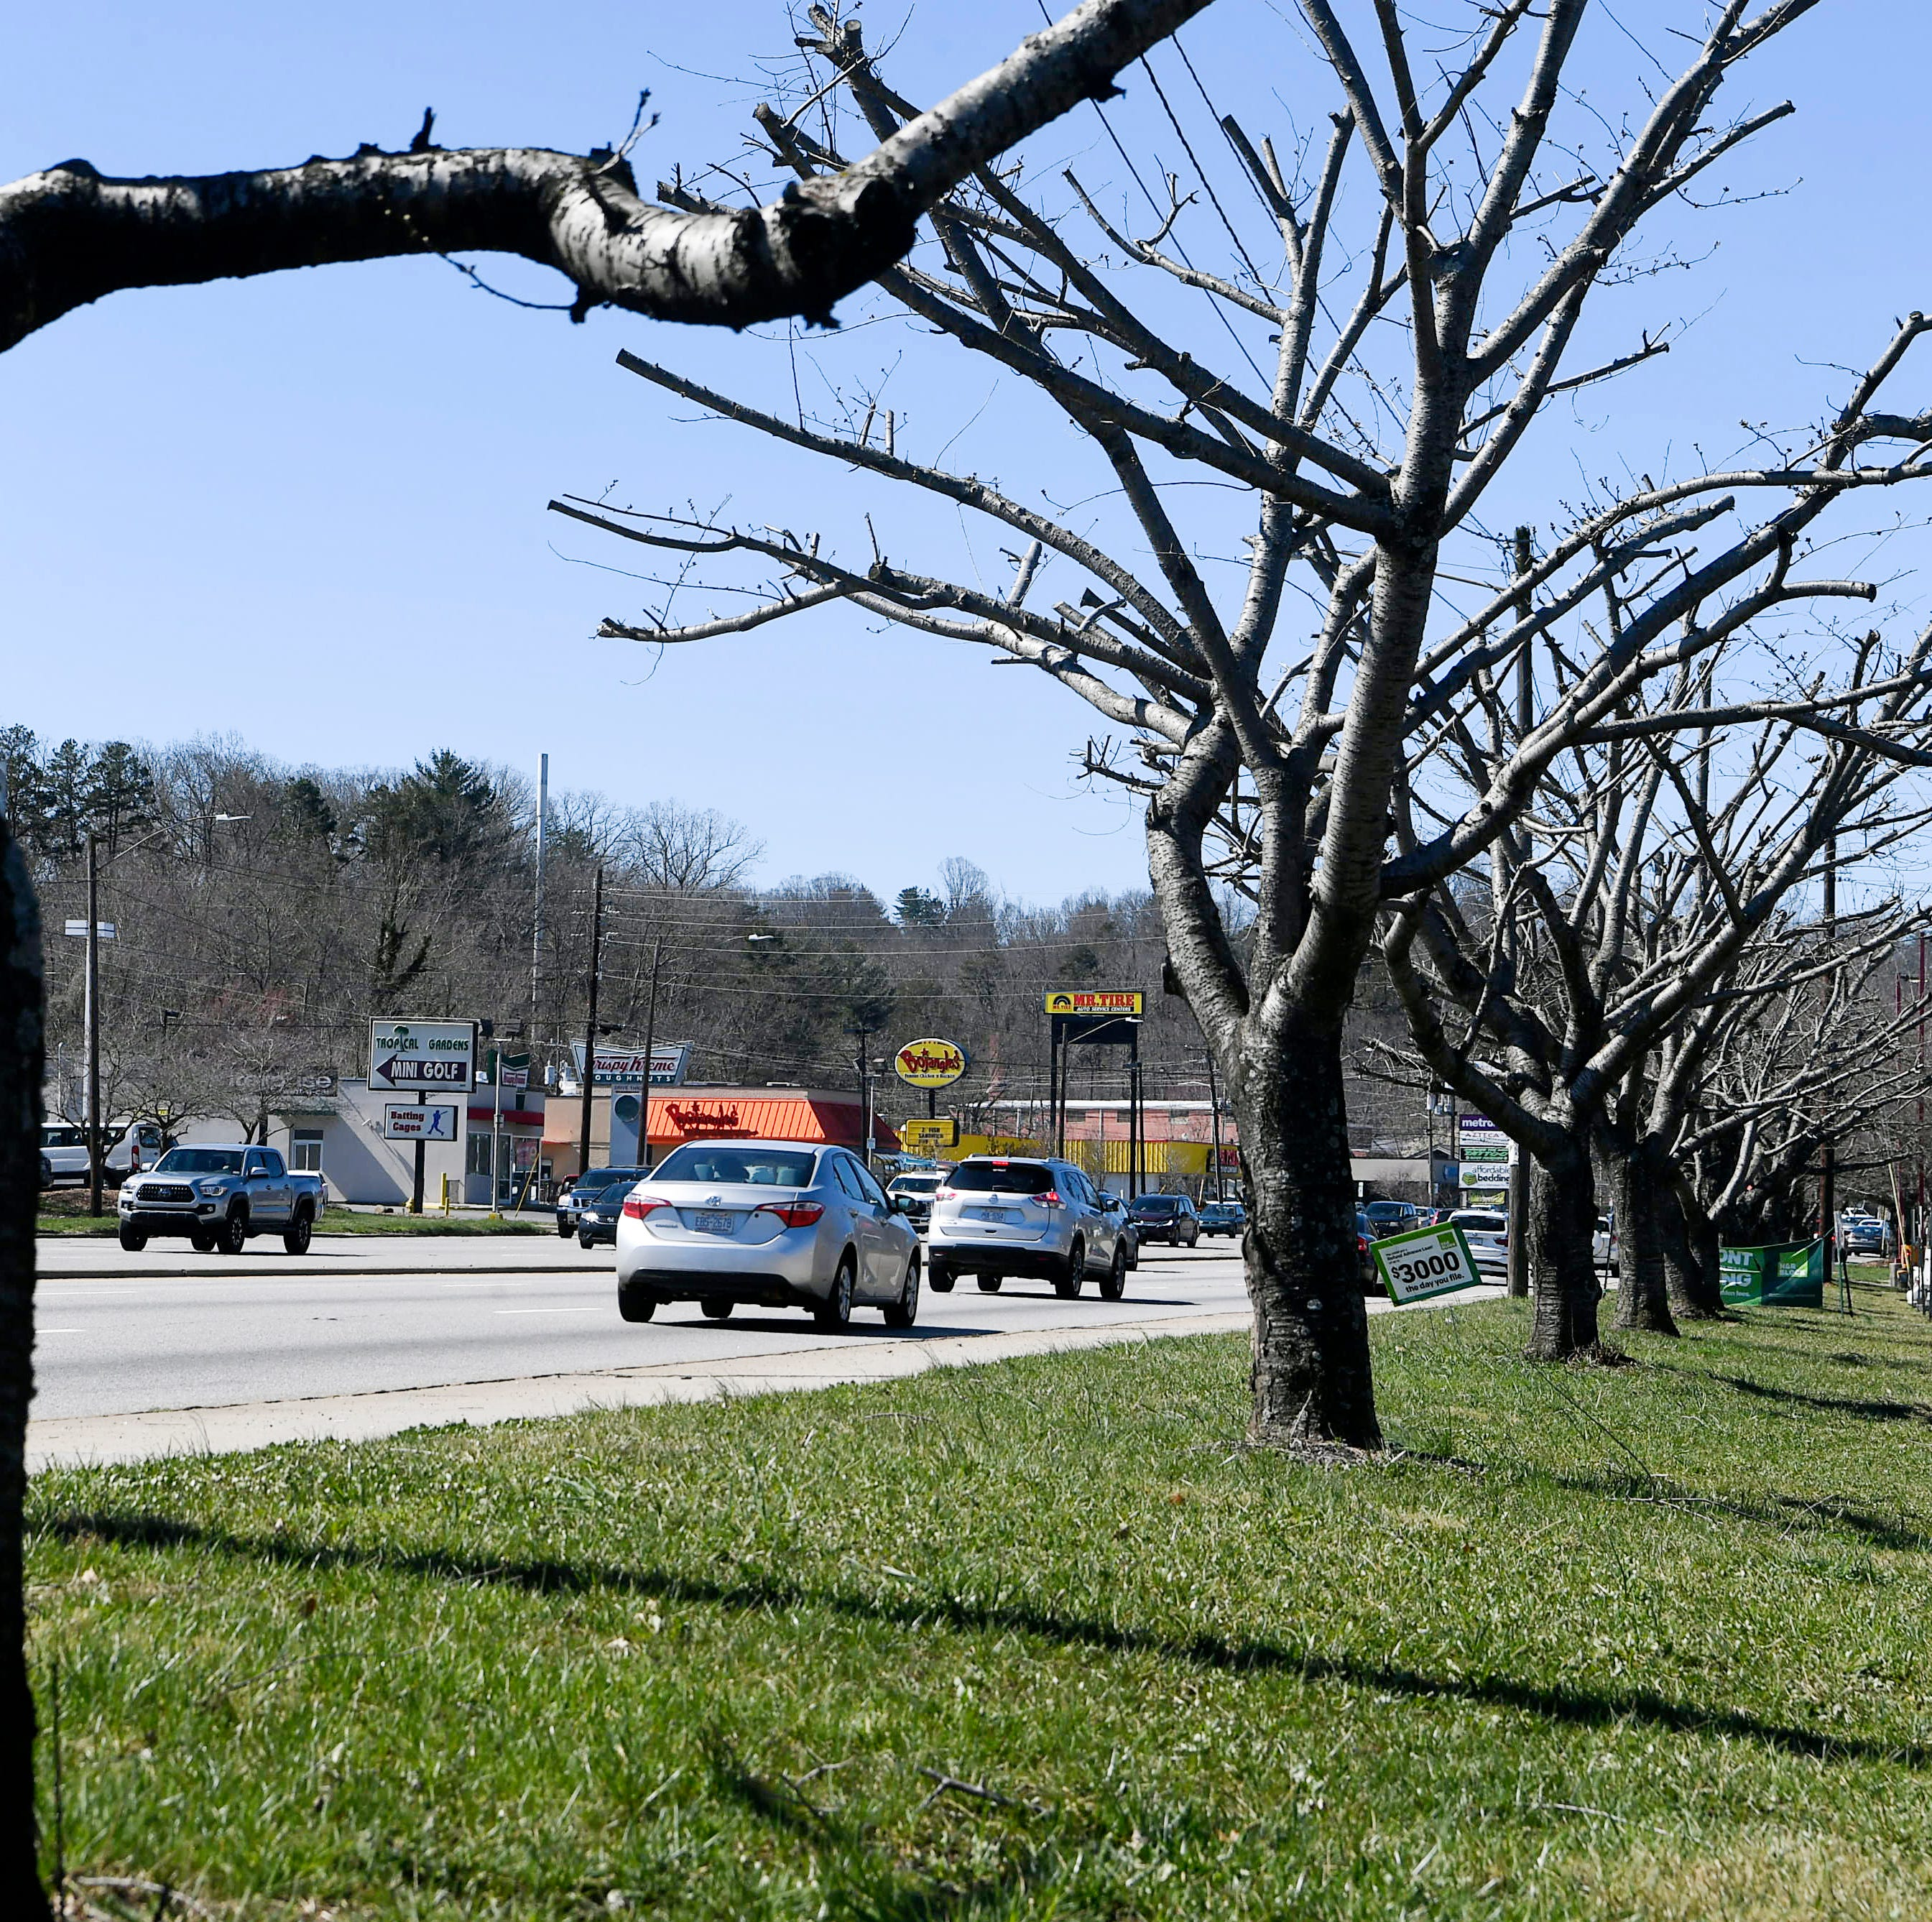 Patton Avenue business owner levied $19K fine for illegal tree topping, won't have to pay